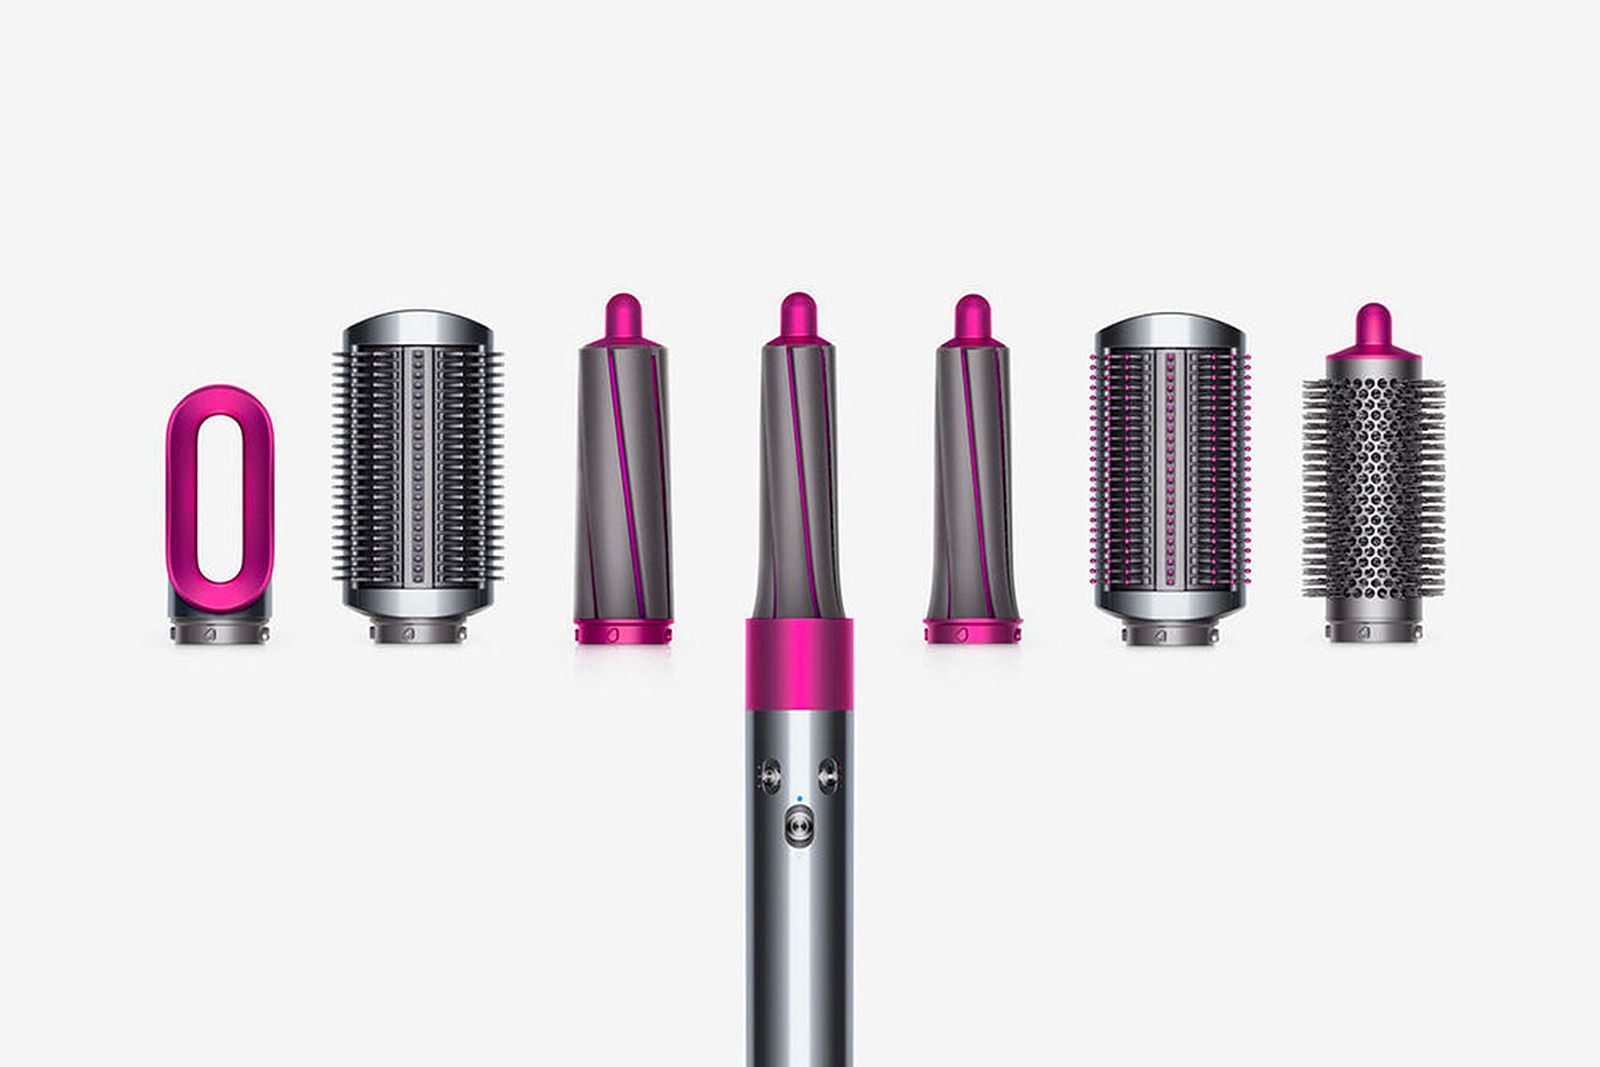 dyson airwrap hair curler aerospace physics